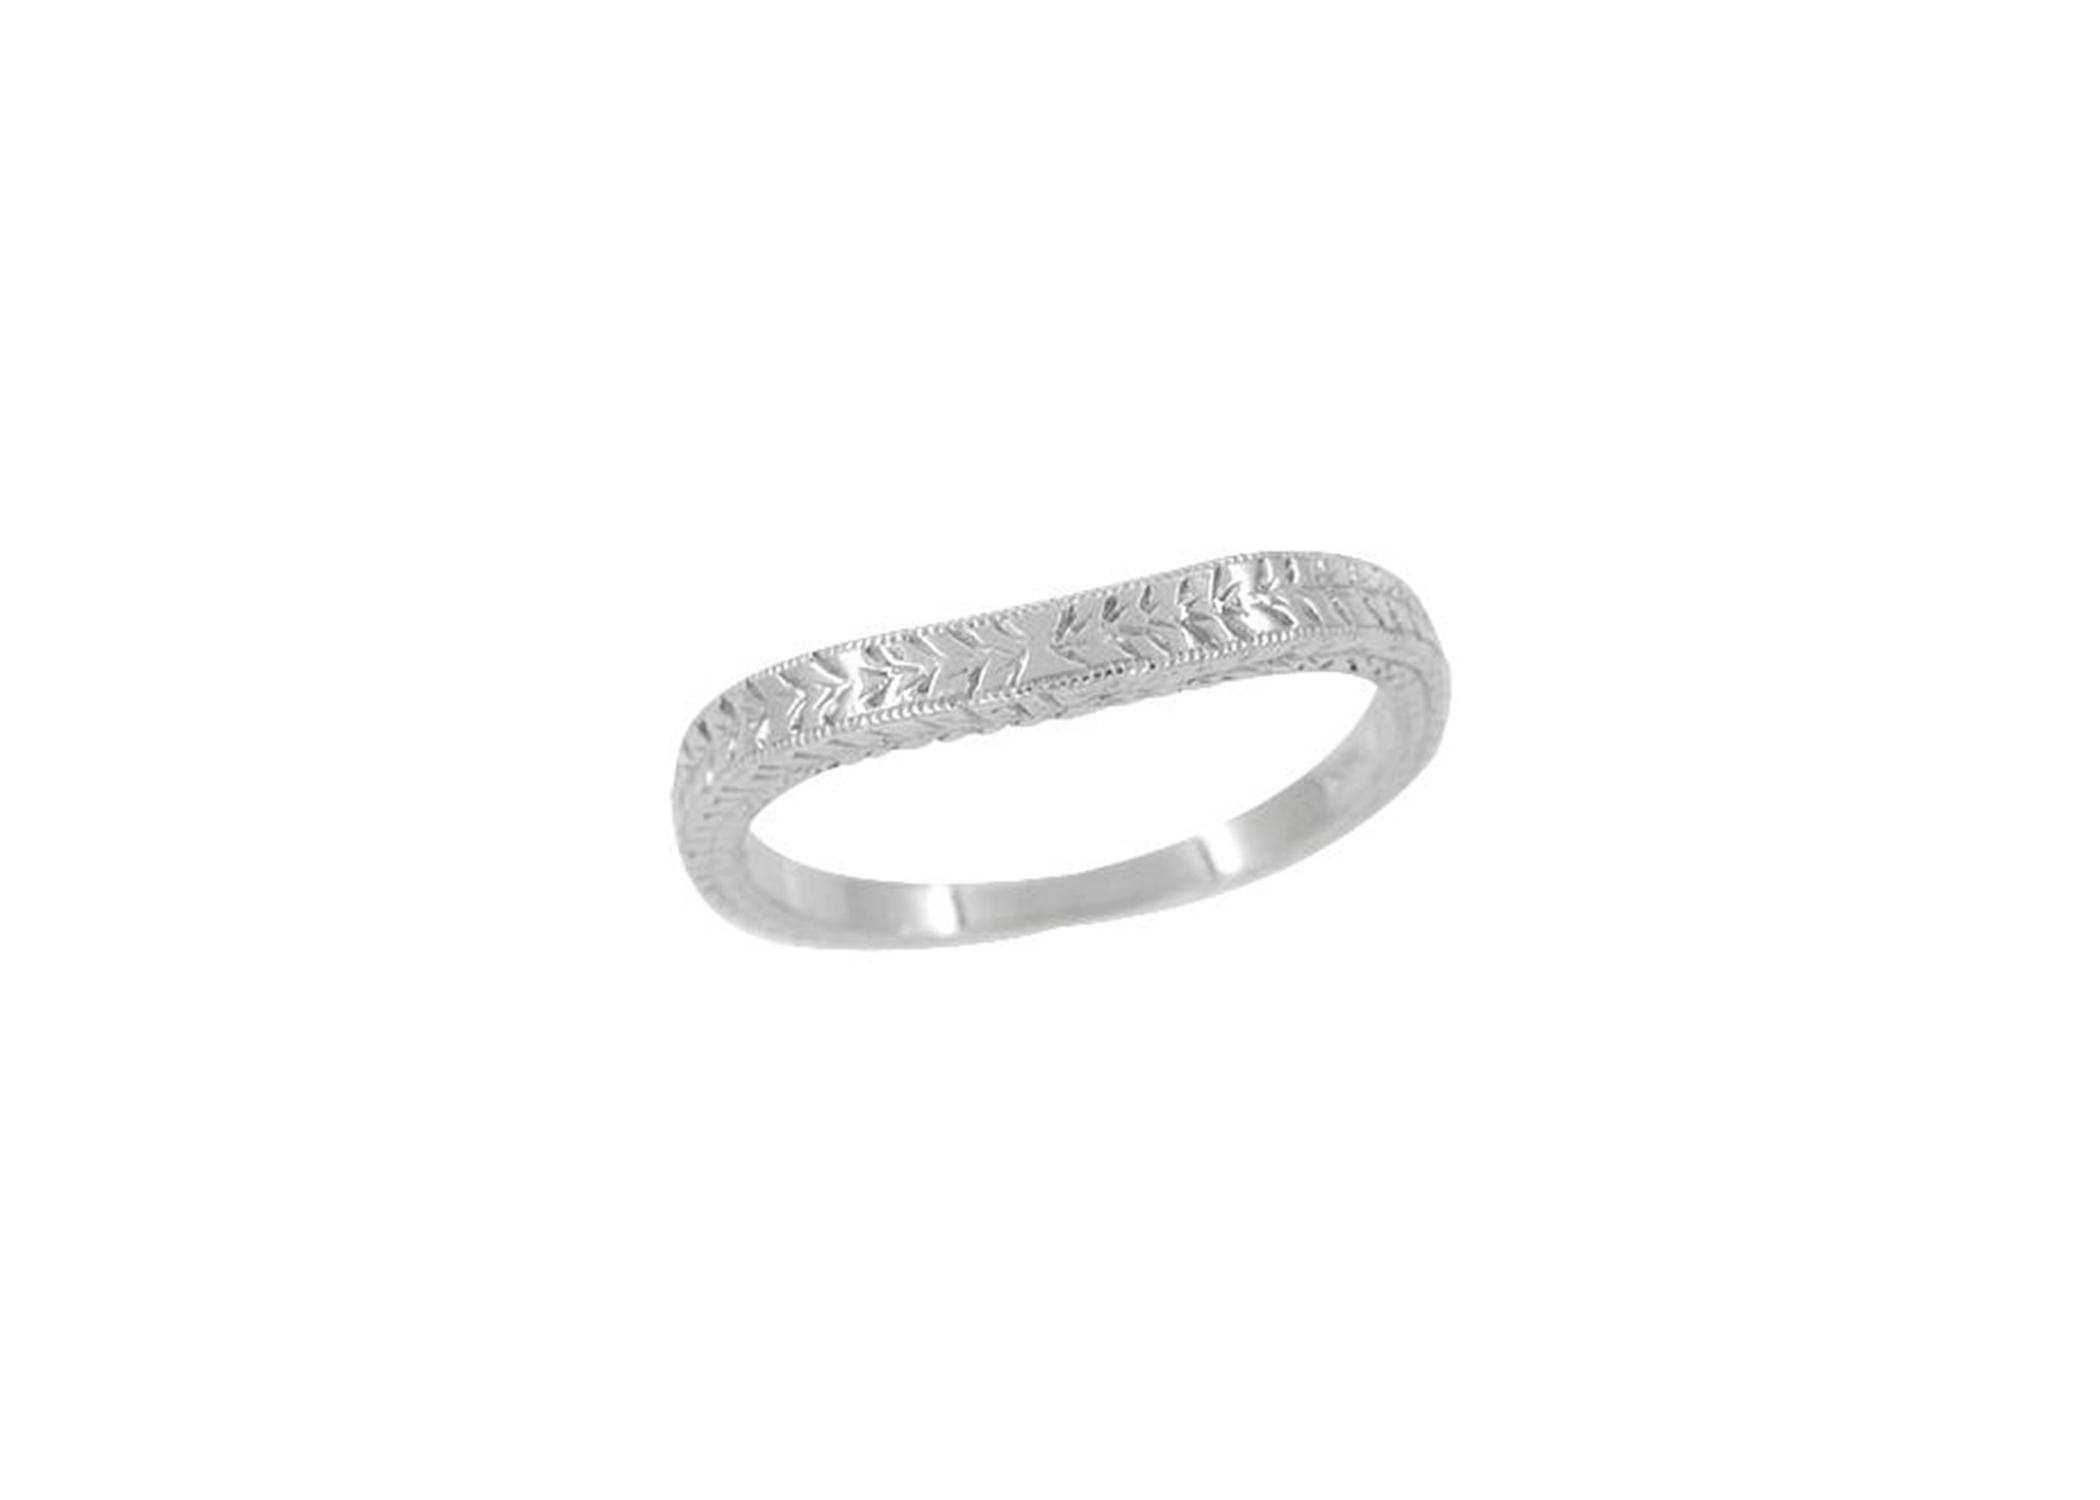 product rings ring pretty rhodium plated antique ave engagement pave cz xl